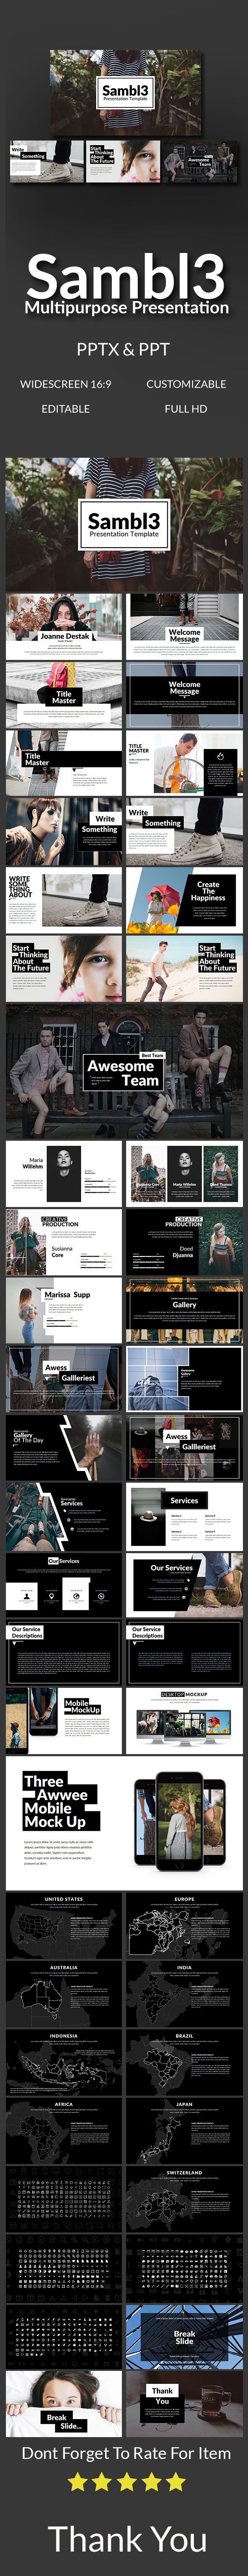 Pin by best Graphic Design on PowerPoint Templates | Pinterest ...